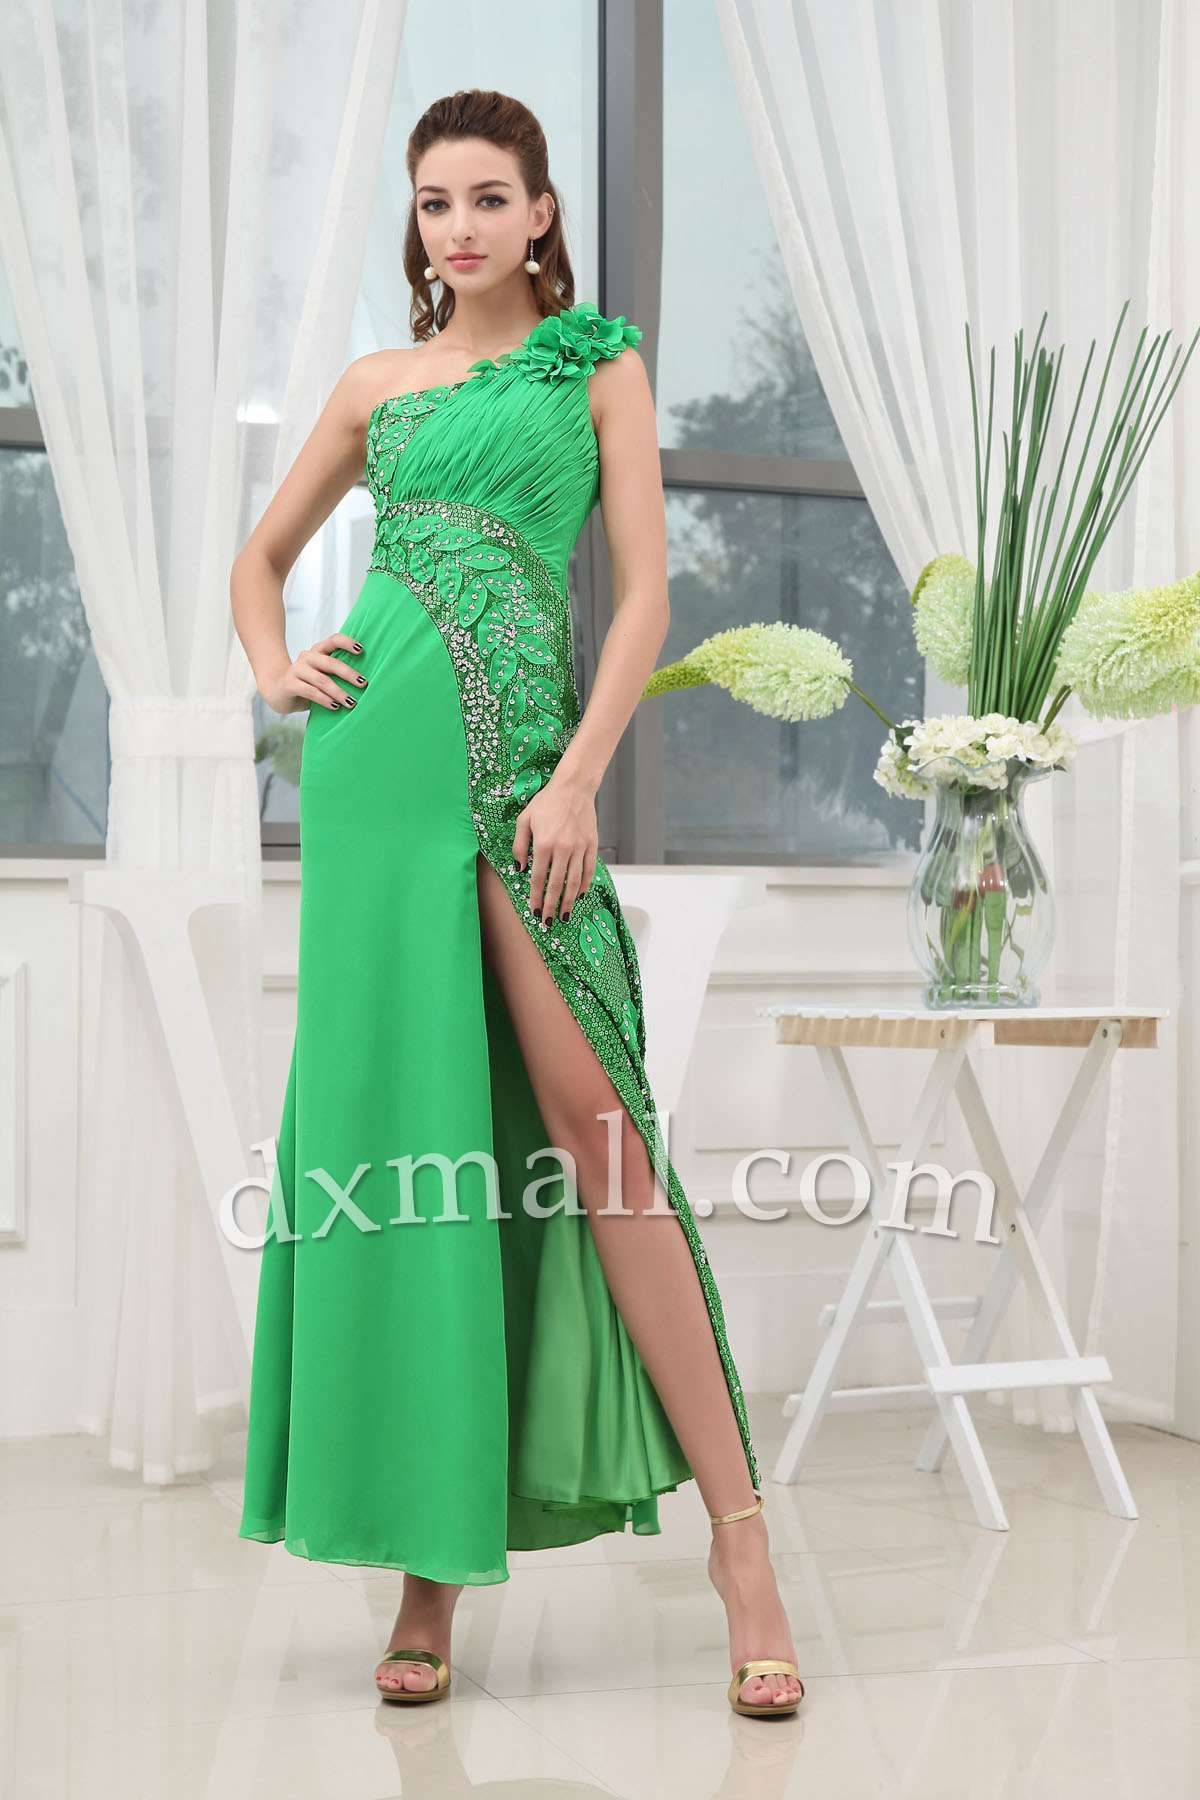 Formal dresses to wear to a wedding  Empire Wedding Guest Dresses One Shoulder Ankle Length Chiffon